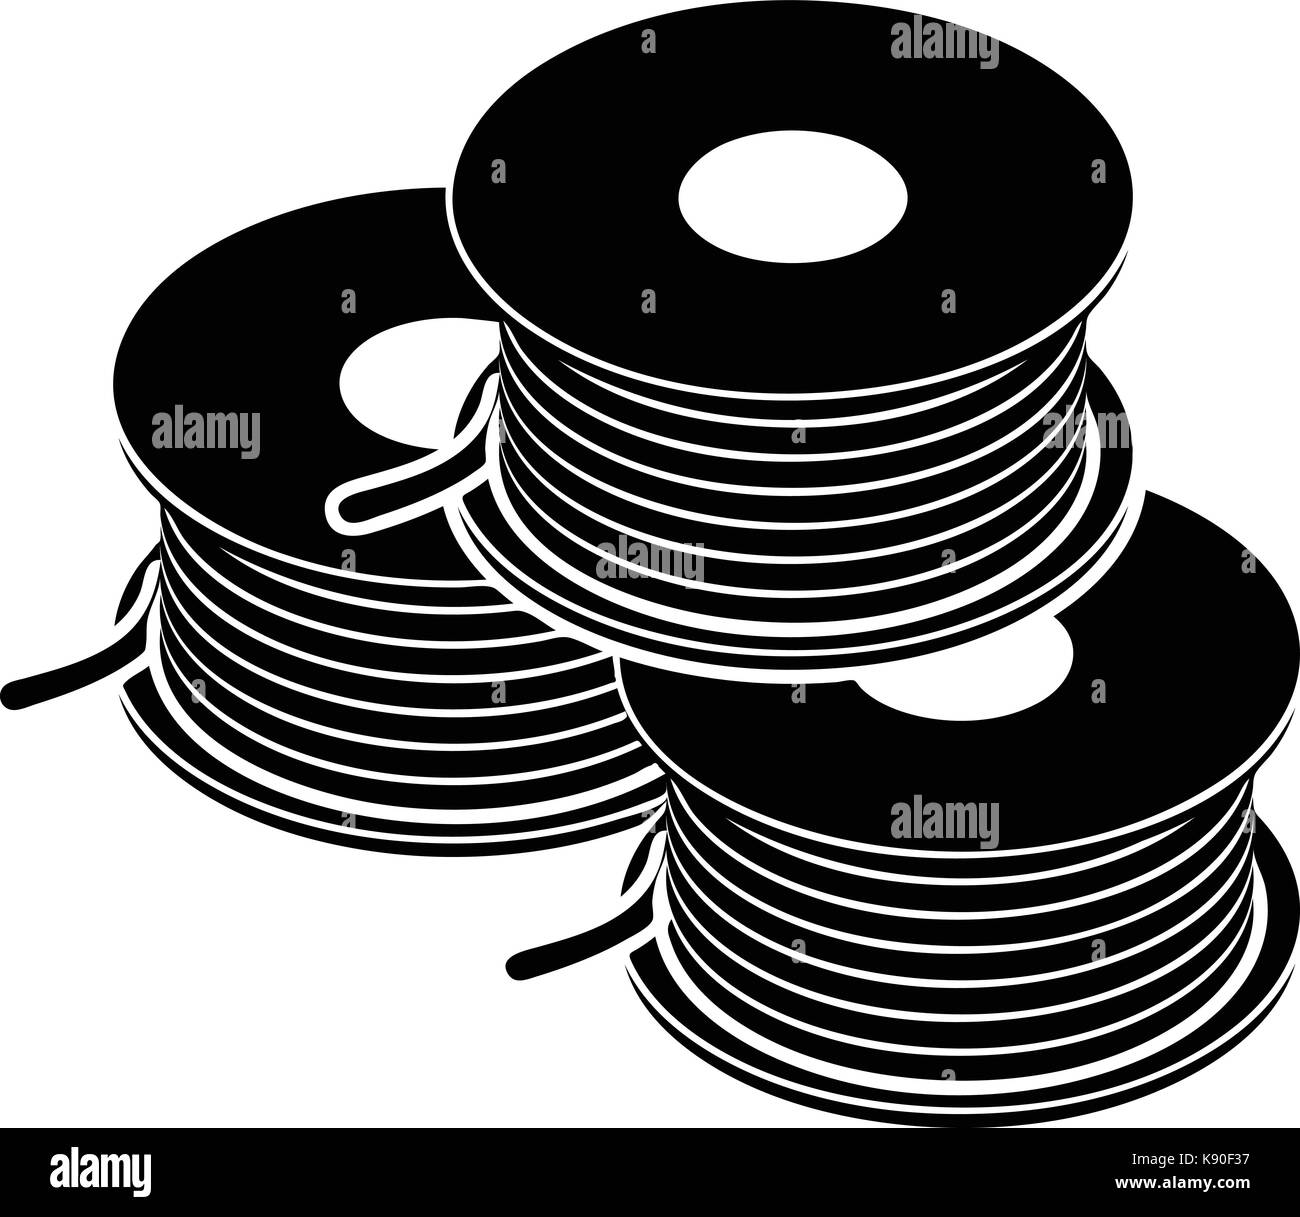 Wire Spool Icon Simple Style Stock Photos & Wire Spool Icon Simple ...